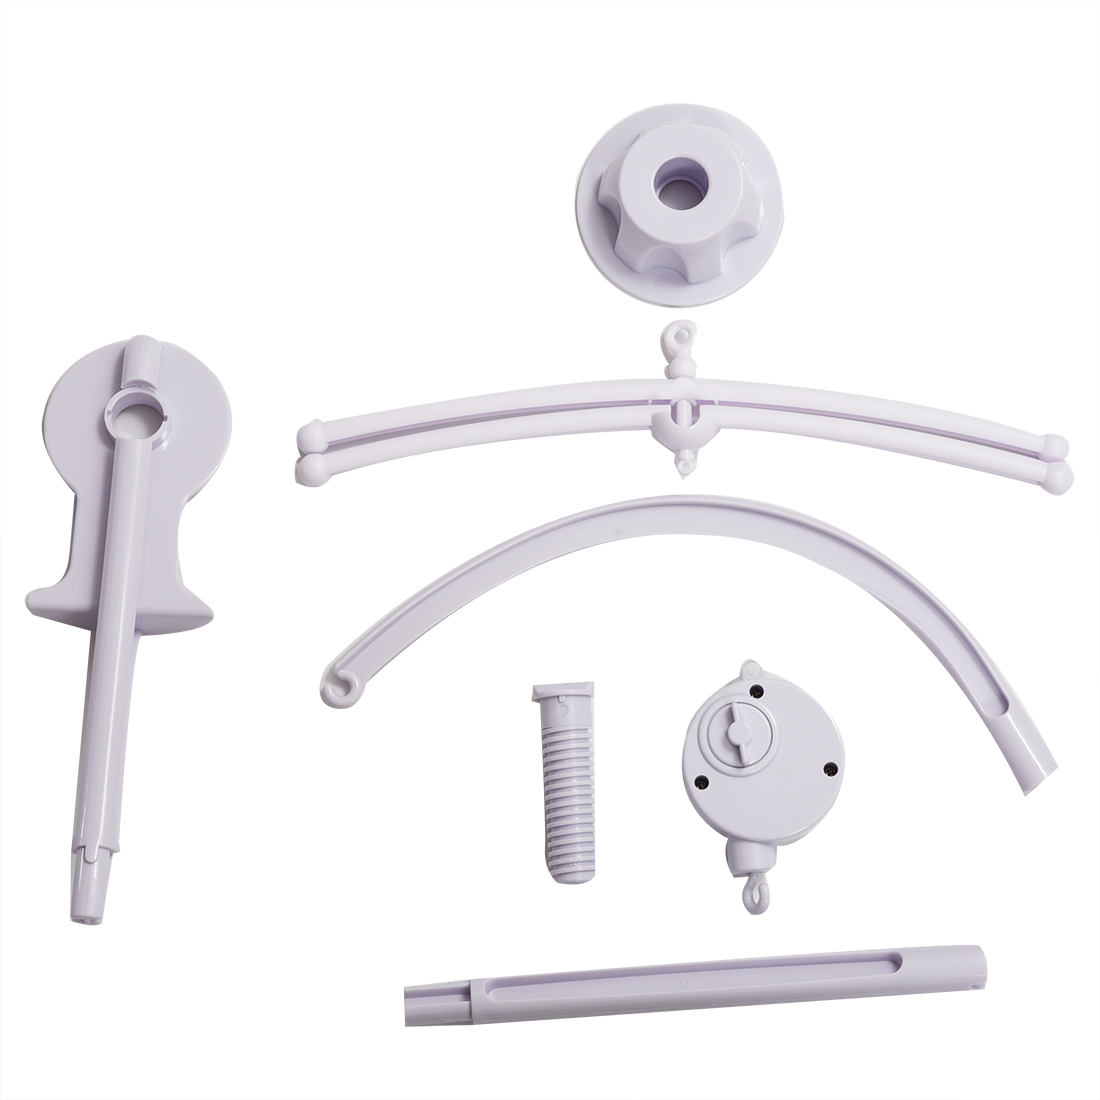 Baby bed holder - Abwe Best Sale White Baby Crib Mobile Bed Bell Toy Holder Arm Bracket Wind